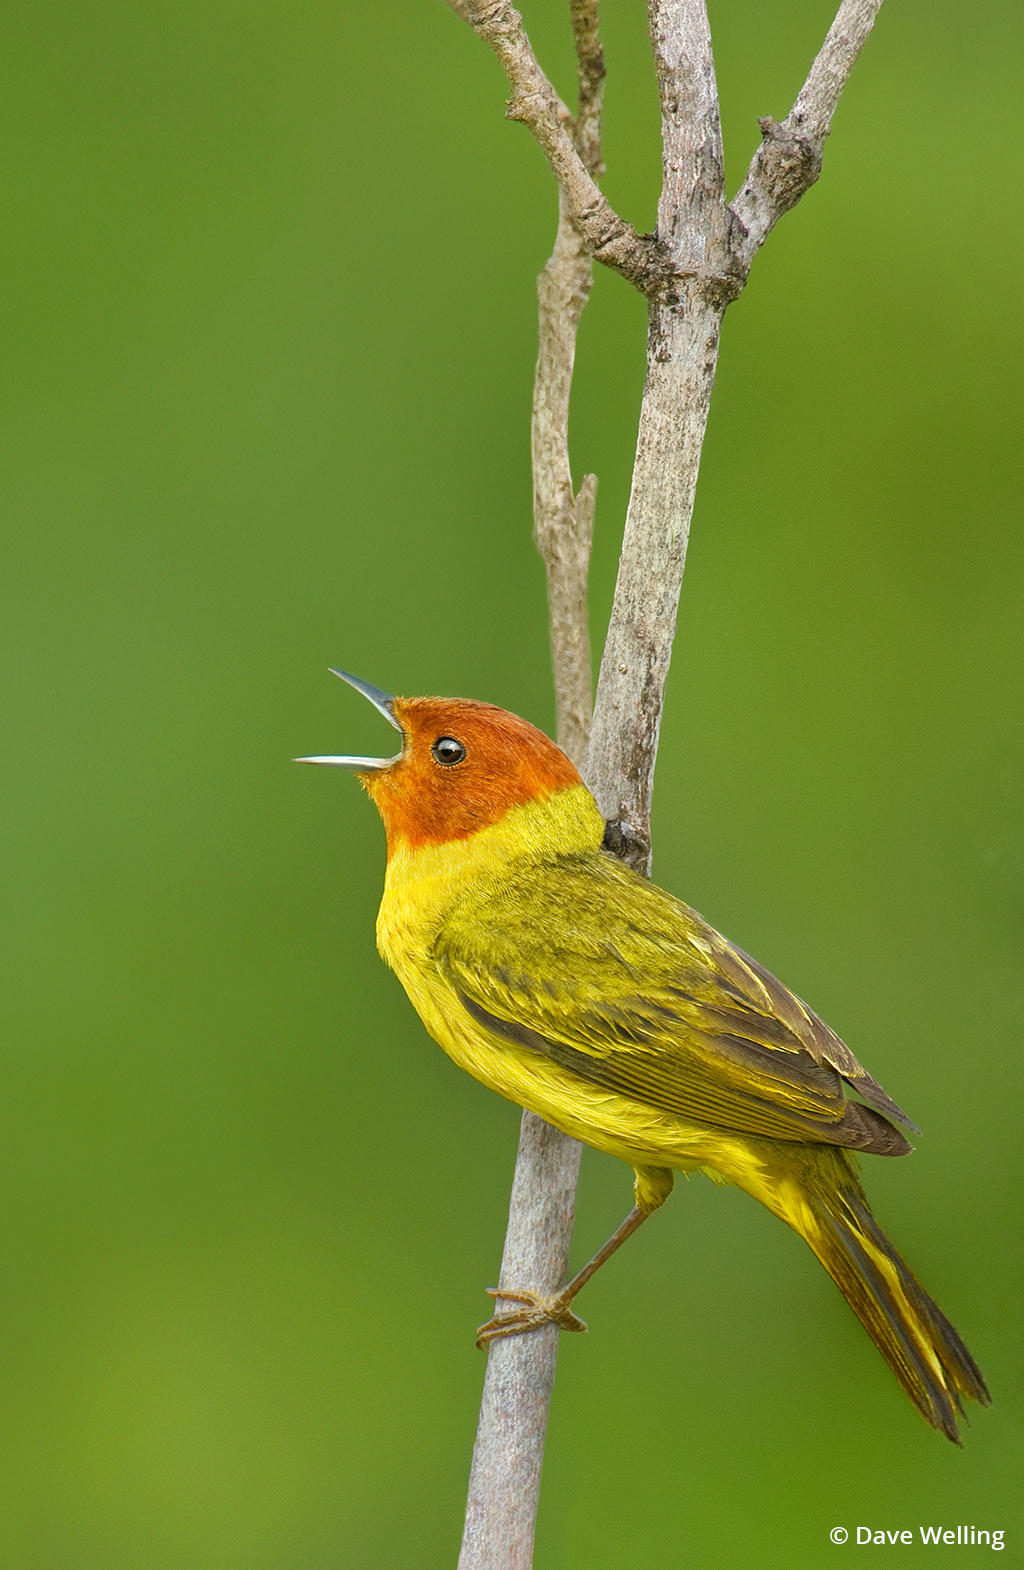 Image of a mangrove yellow warbler.